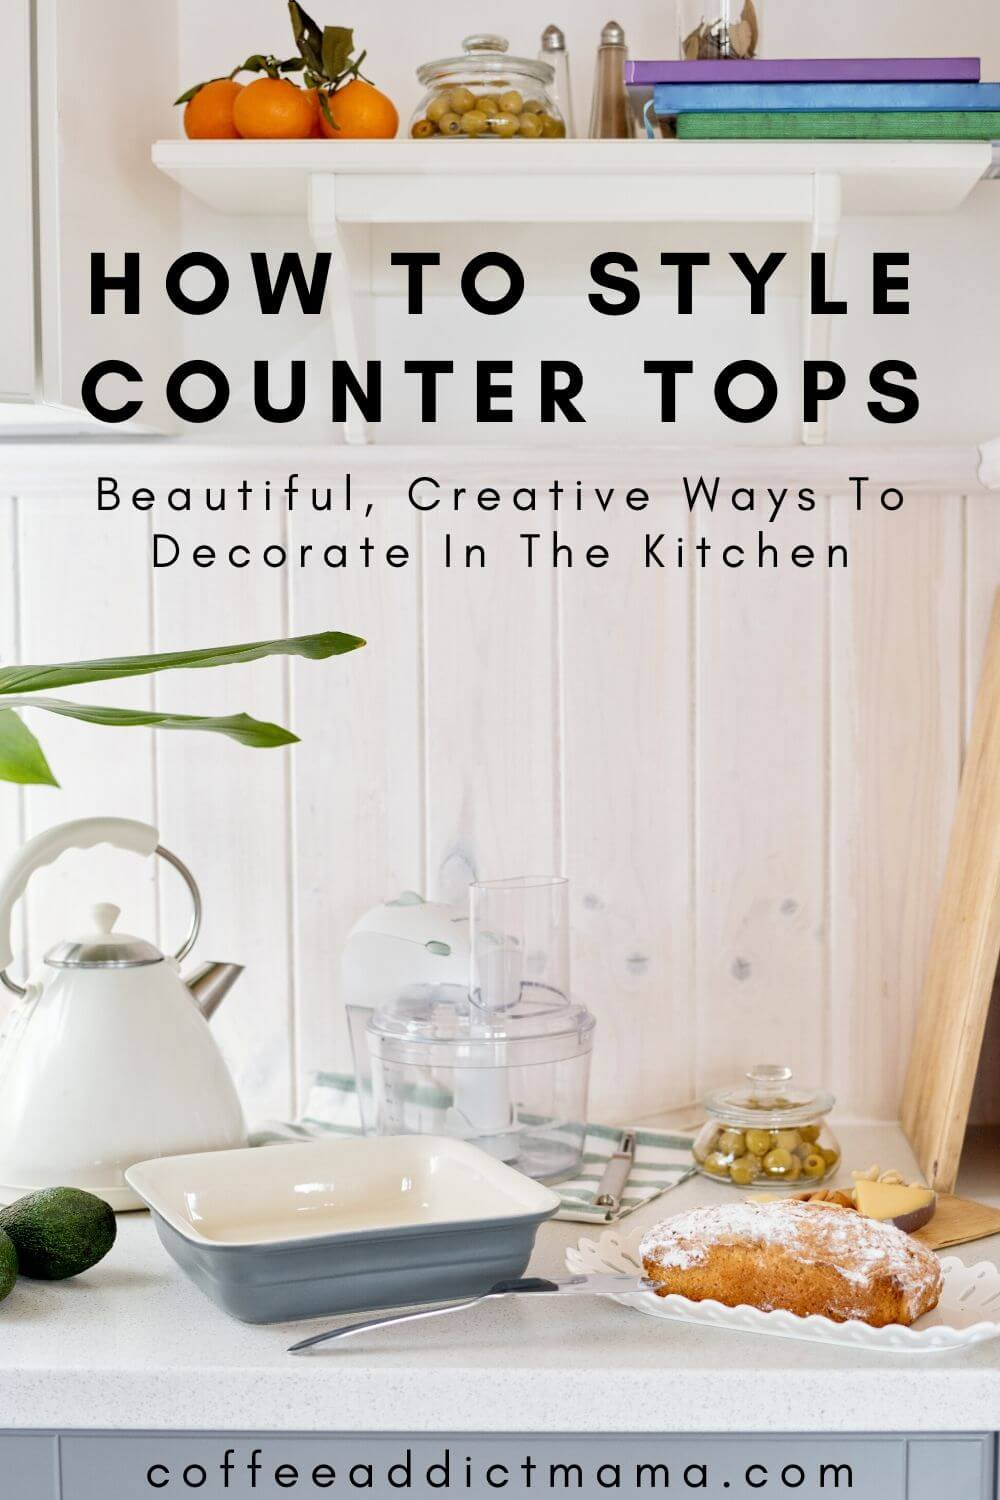 How To Style Counter Tops